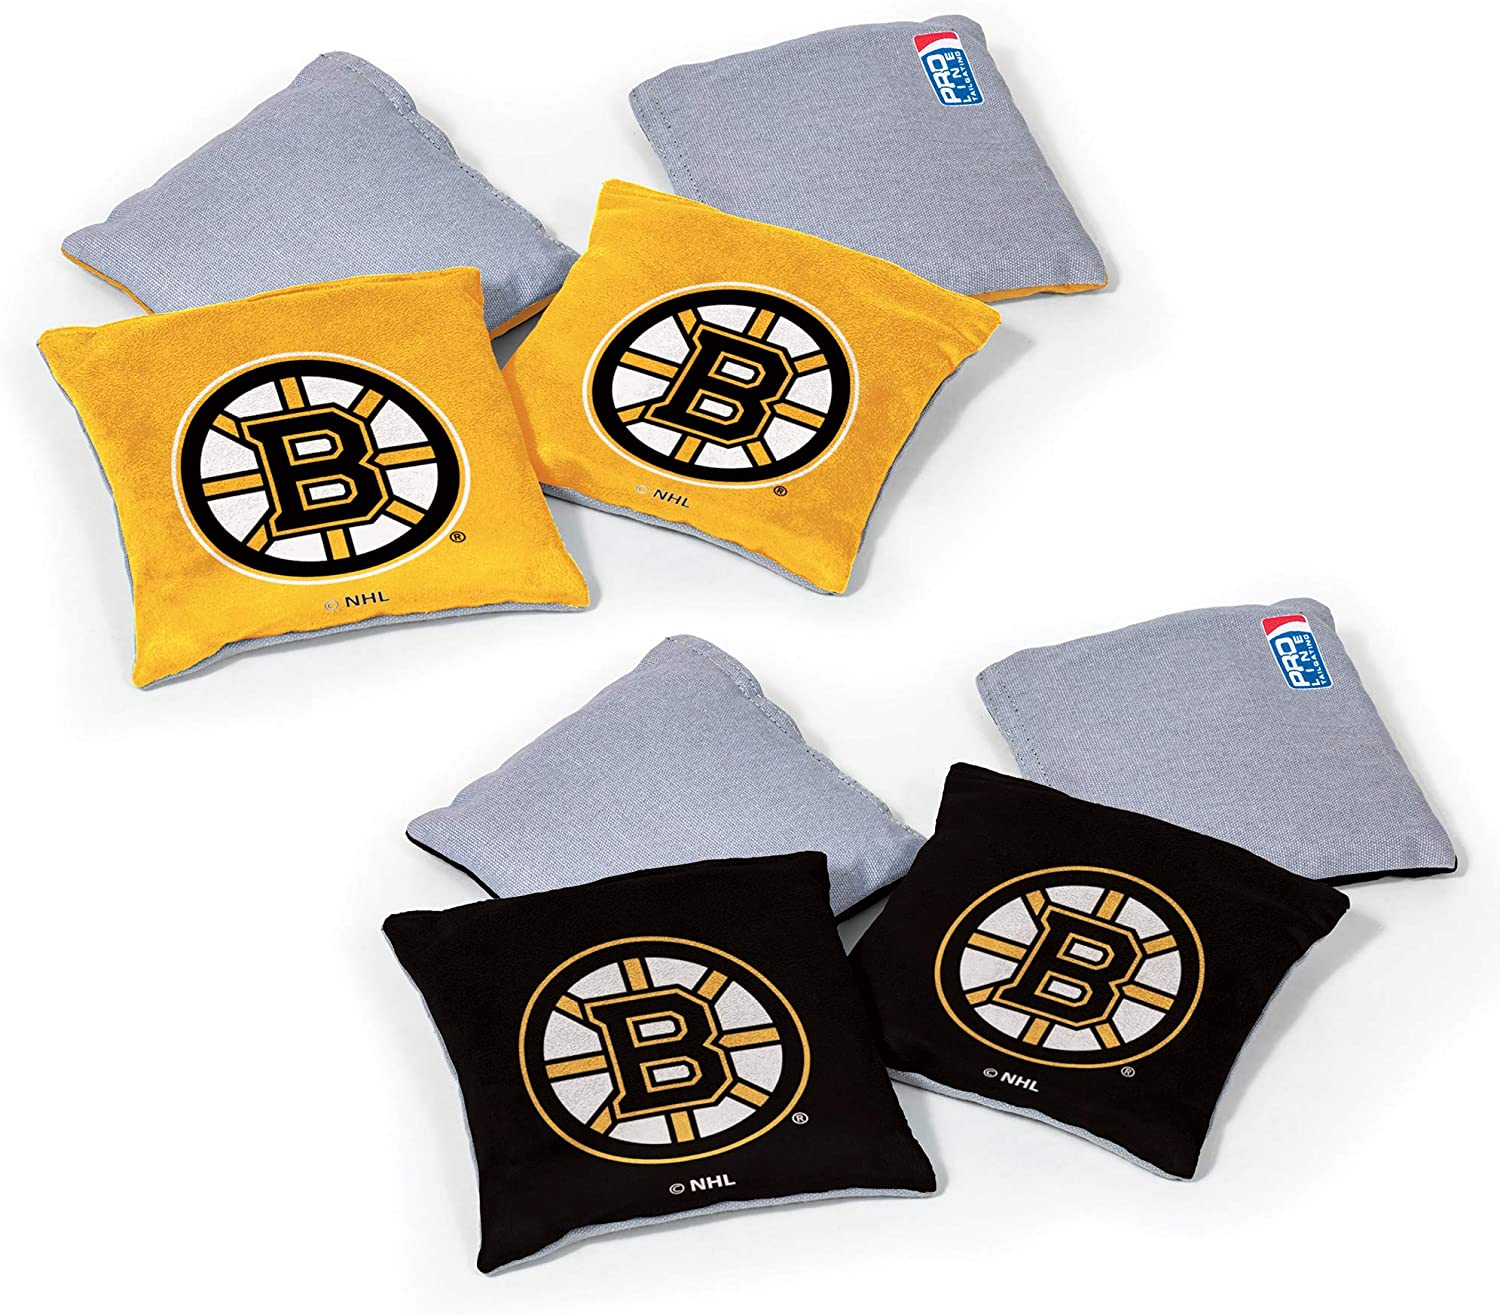 NHL Pro Ice Chicago Mall Hockey Dual Sided Bean Bags Sports Wild by Count 8 Safety and trust